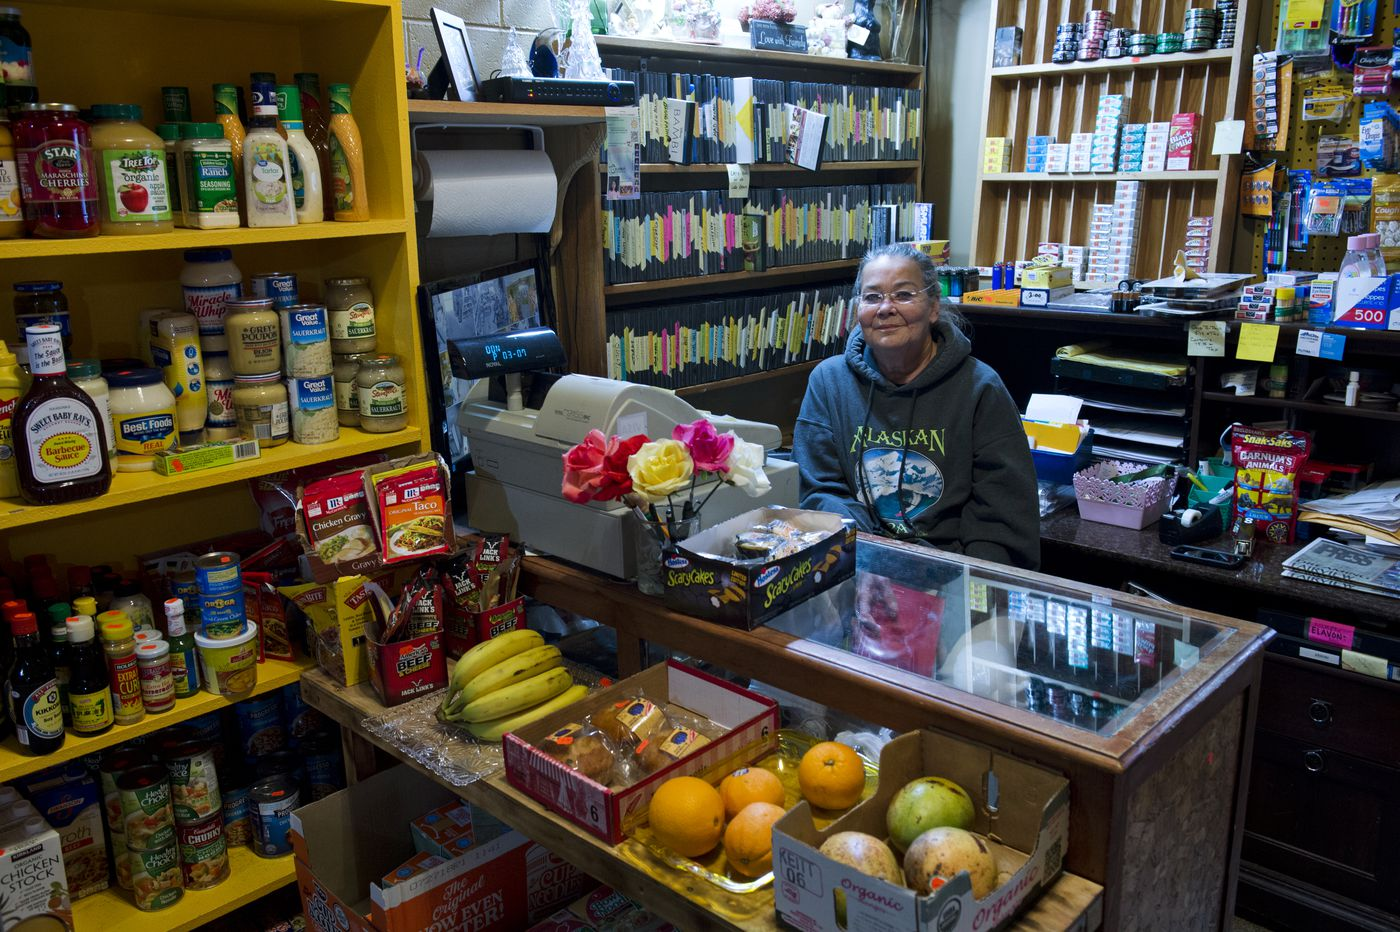 Vicki Dibble works the counter at the Kozy Korner store inside Begich Towers on Oct. 10. The building, consisting of 196 condos, is home to most of Whittier's residents. (Marc Lester / Alaska Dispatch News)